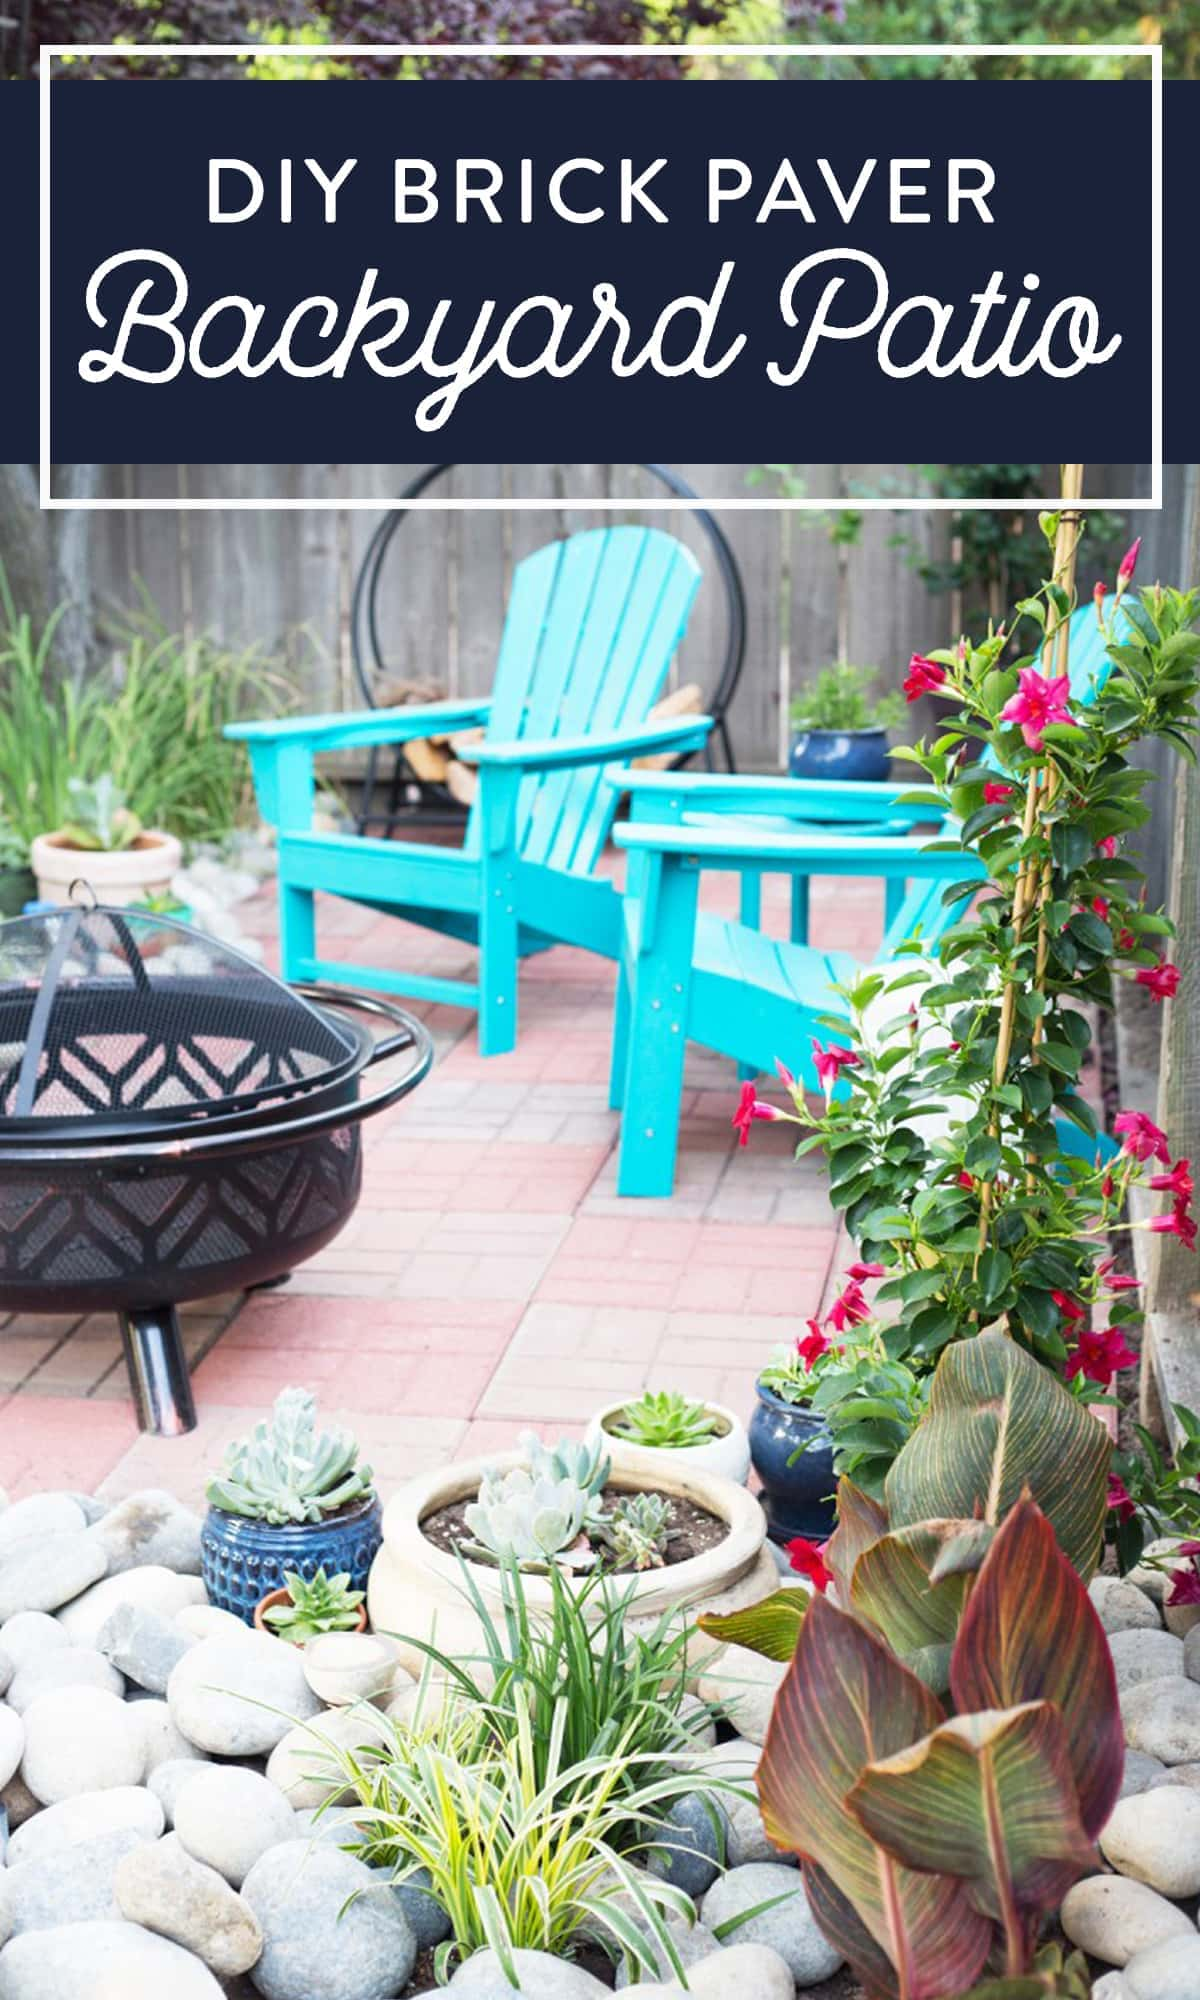 Brick paver backyard patio diy